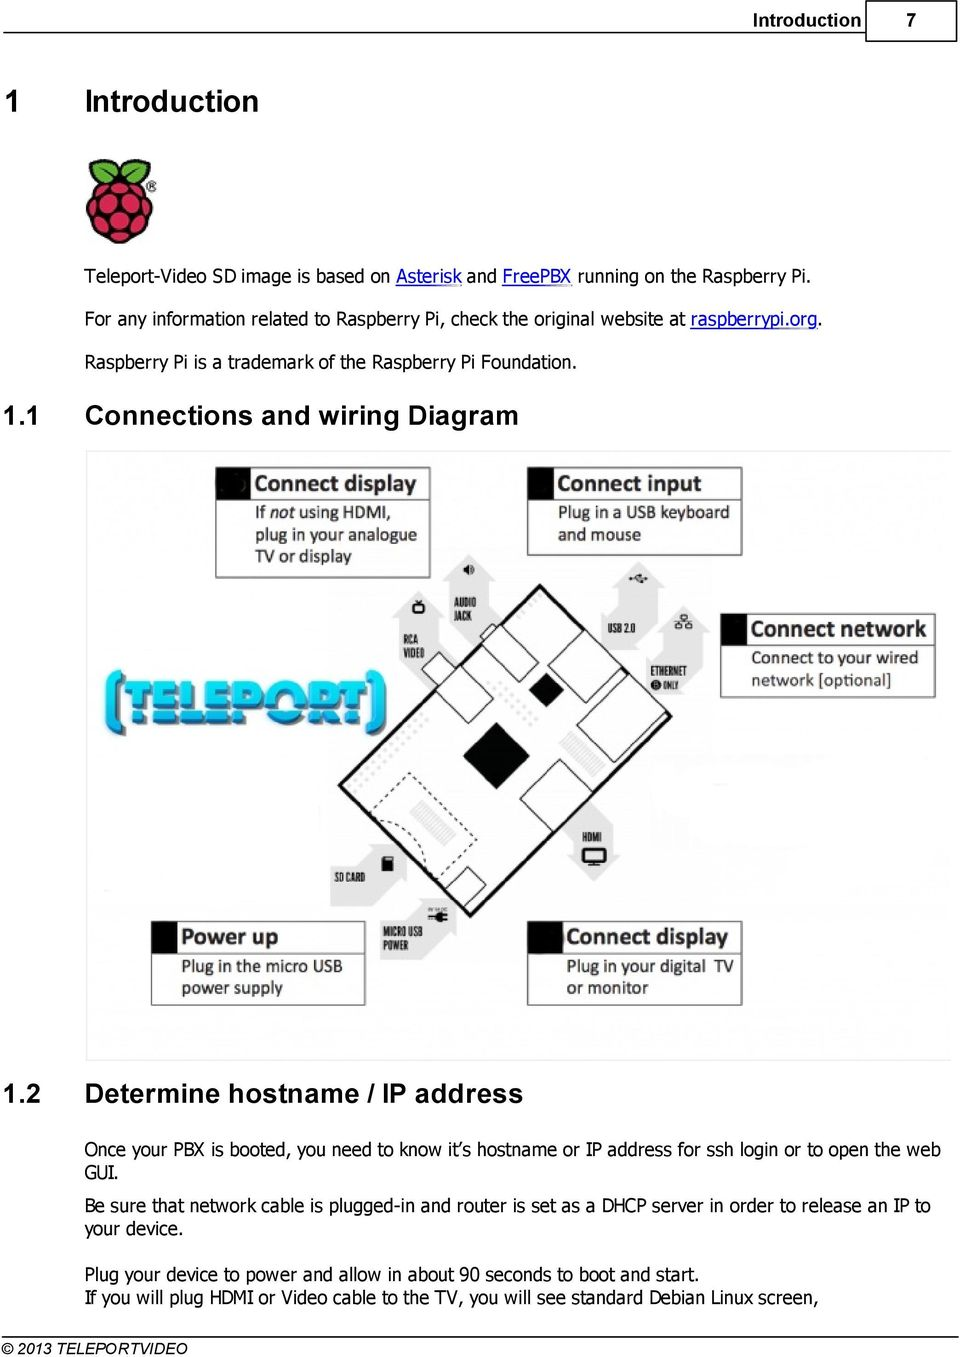 Connections And Wiring Diagram Pdf Ip Phone 1 12 Determine Hostname Address Once Your Pbx Is Booted